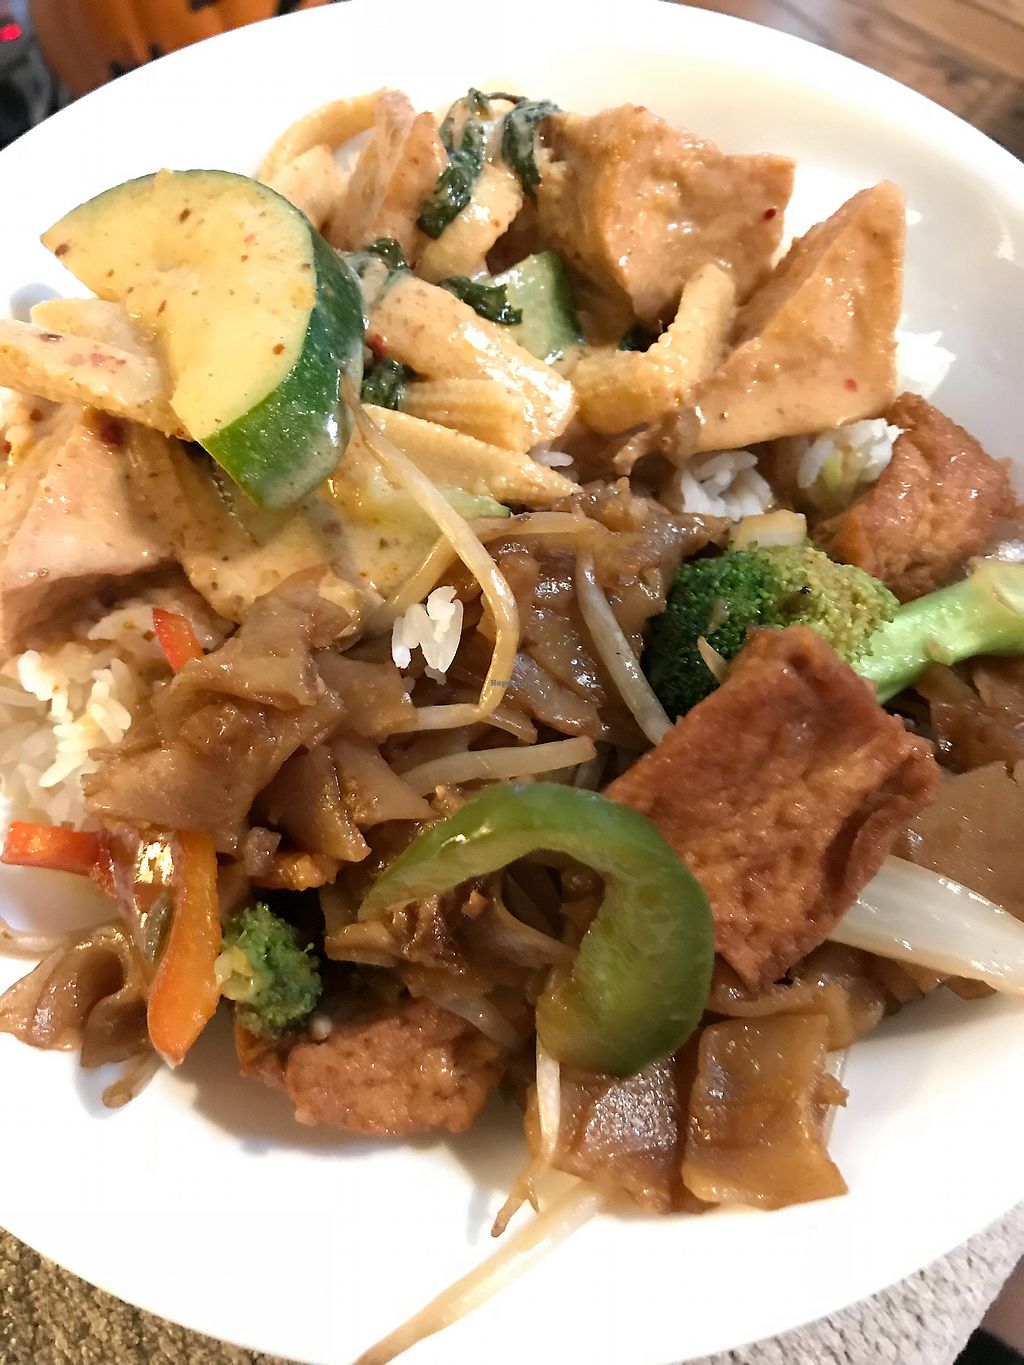 """Photo of Thai Spoon 2  by <a href=""""/members/profile/SoWo1999"""">SoWo1999</a> <br/>Curry and Drunken Noodles with tofu <br/> October 22, 2017  - <a href='/contact/abuse/image/102706/317773'>Report</a>"""